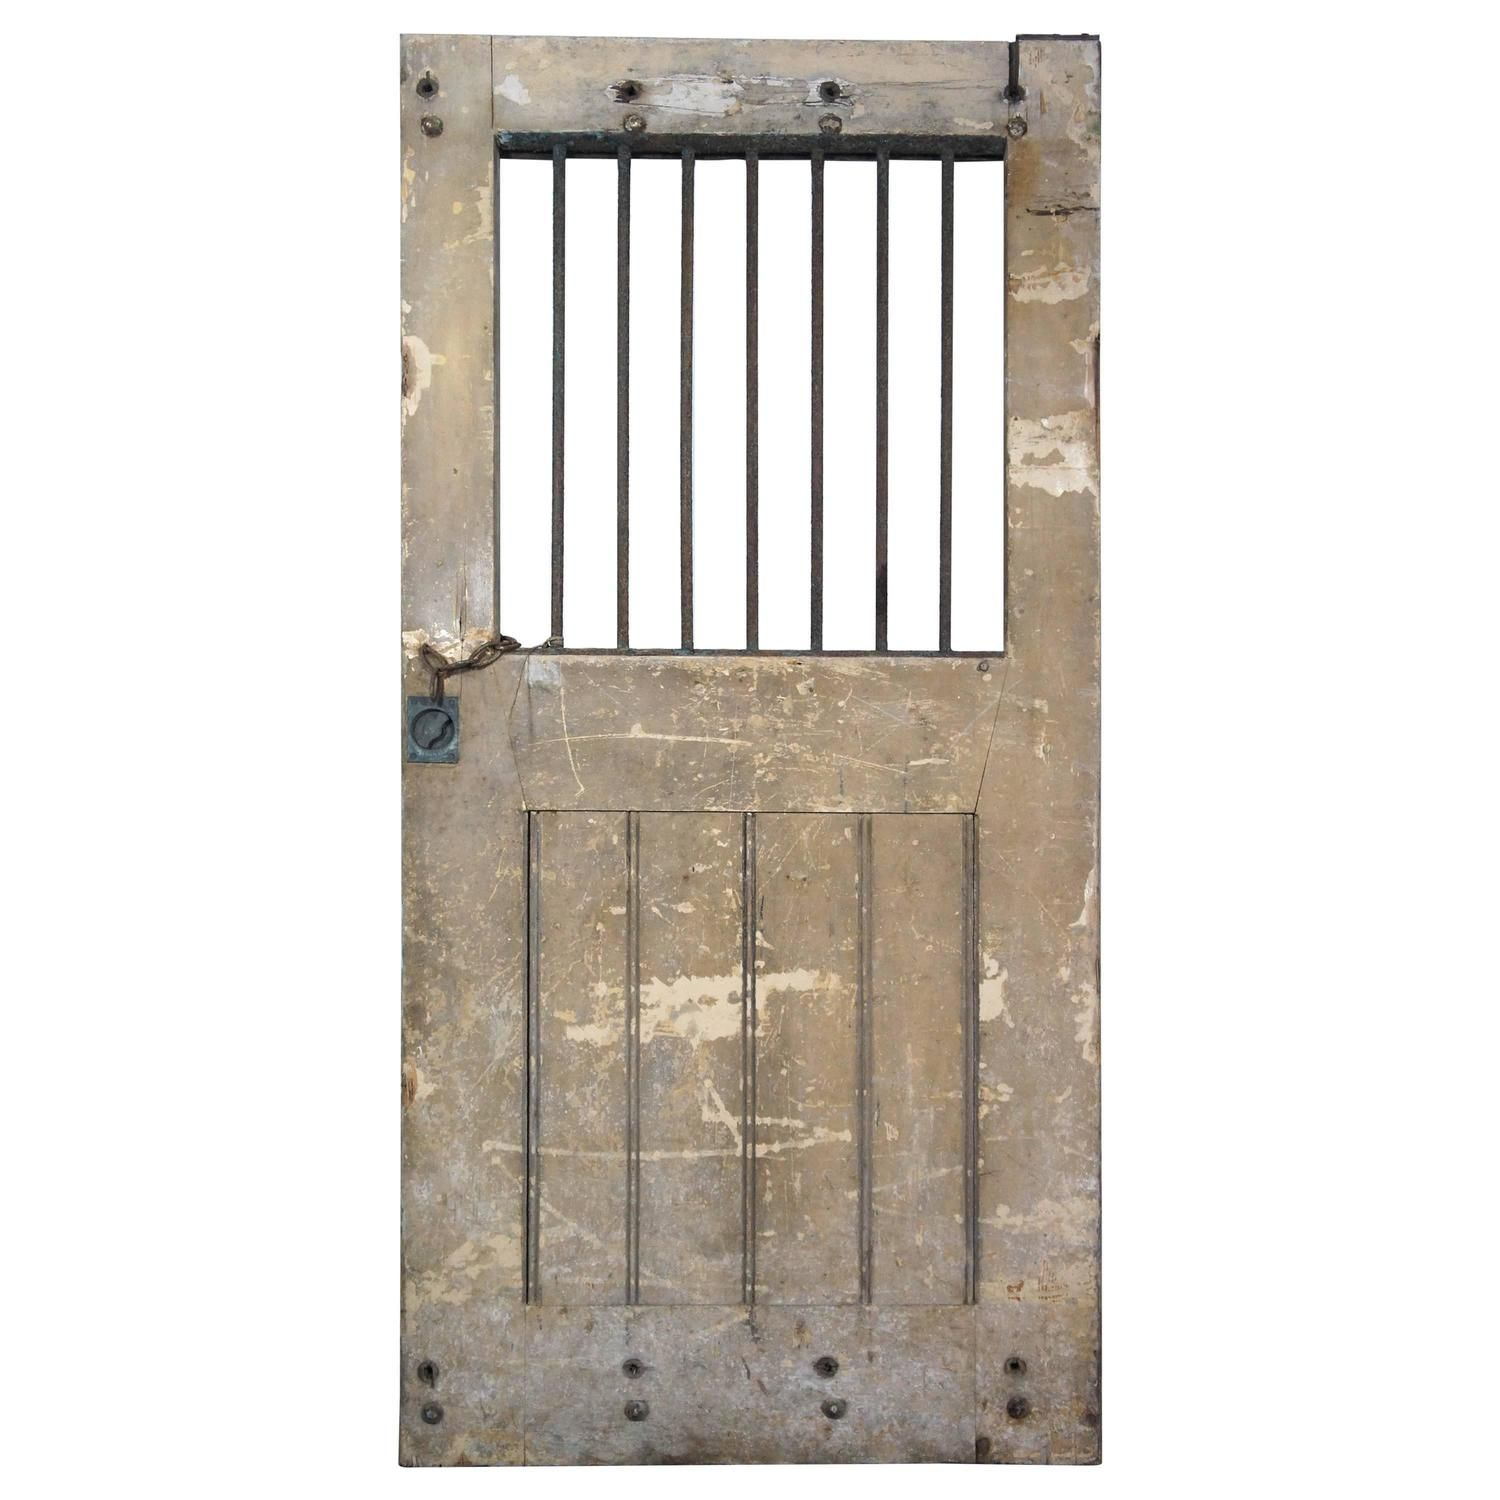 English Country Estate Stable Door Decorative Antique Architectural - English Country Estate Stable Door Decorative Antique Architectural